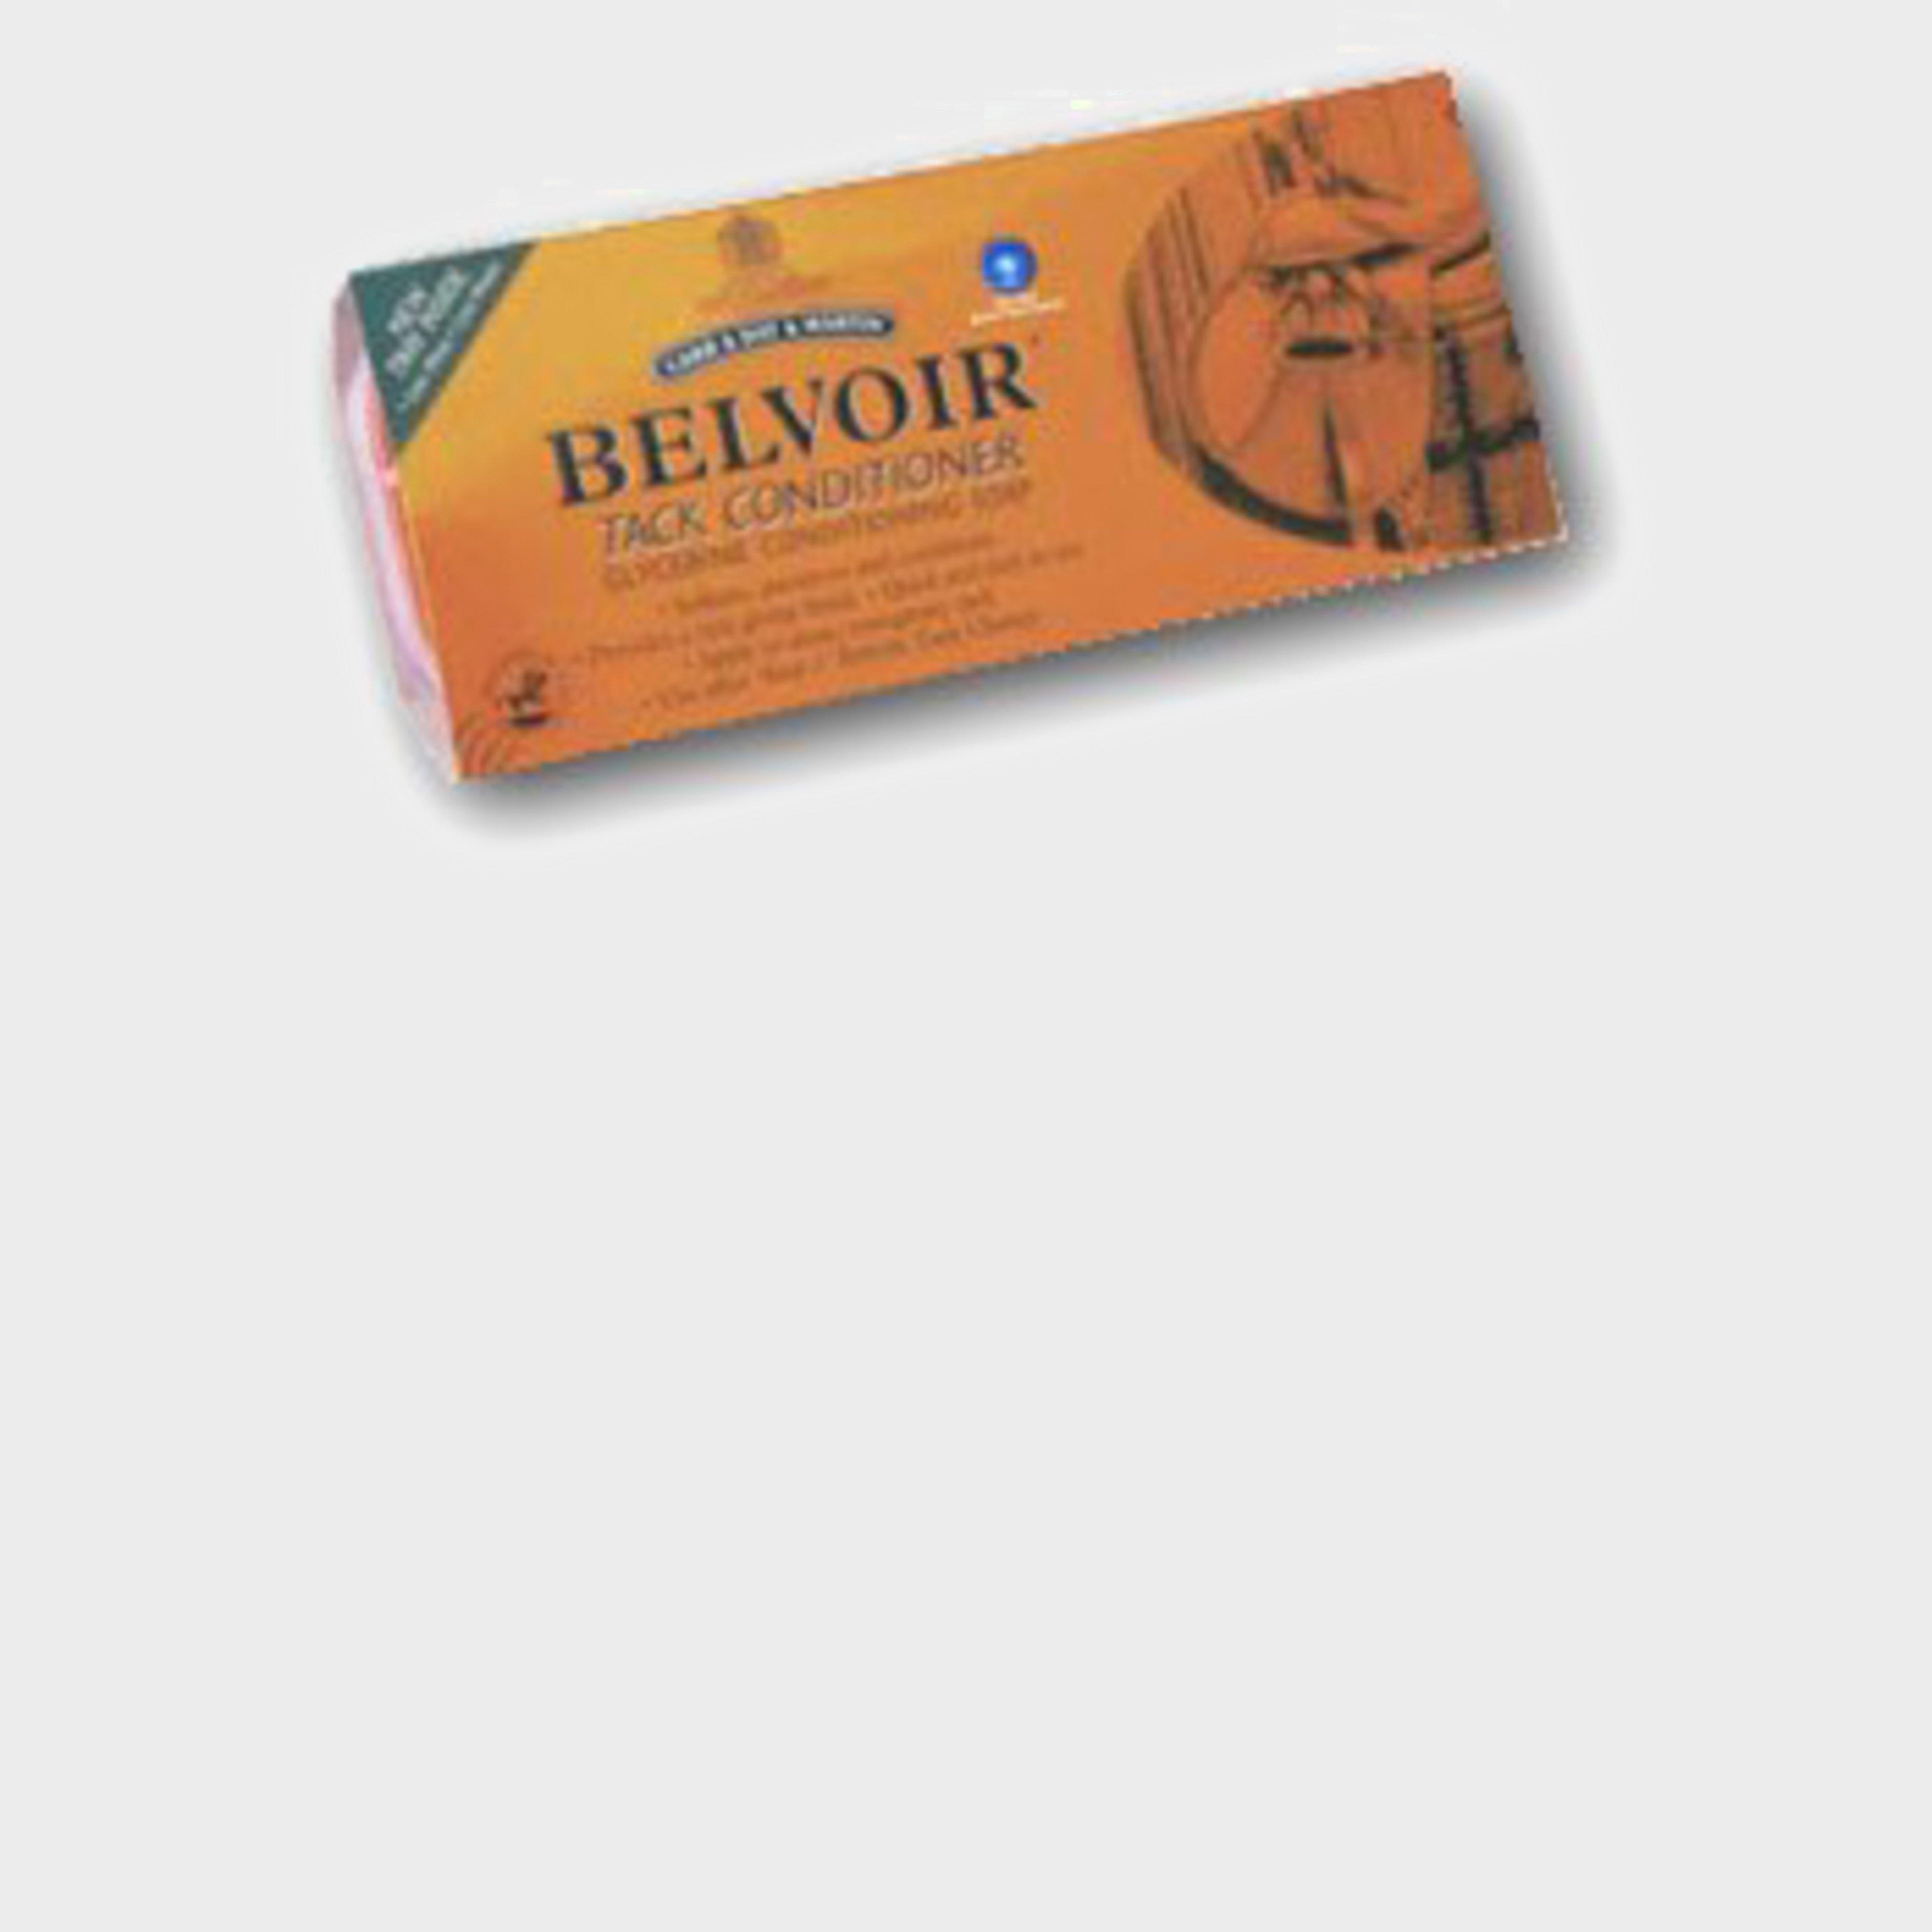 Image of Carr And Day Belvoir Conditioning Soap 250G - Multi/Soap, Multi/SOAP